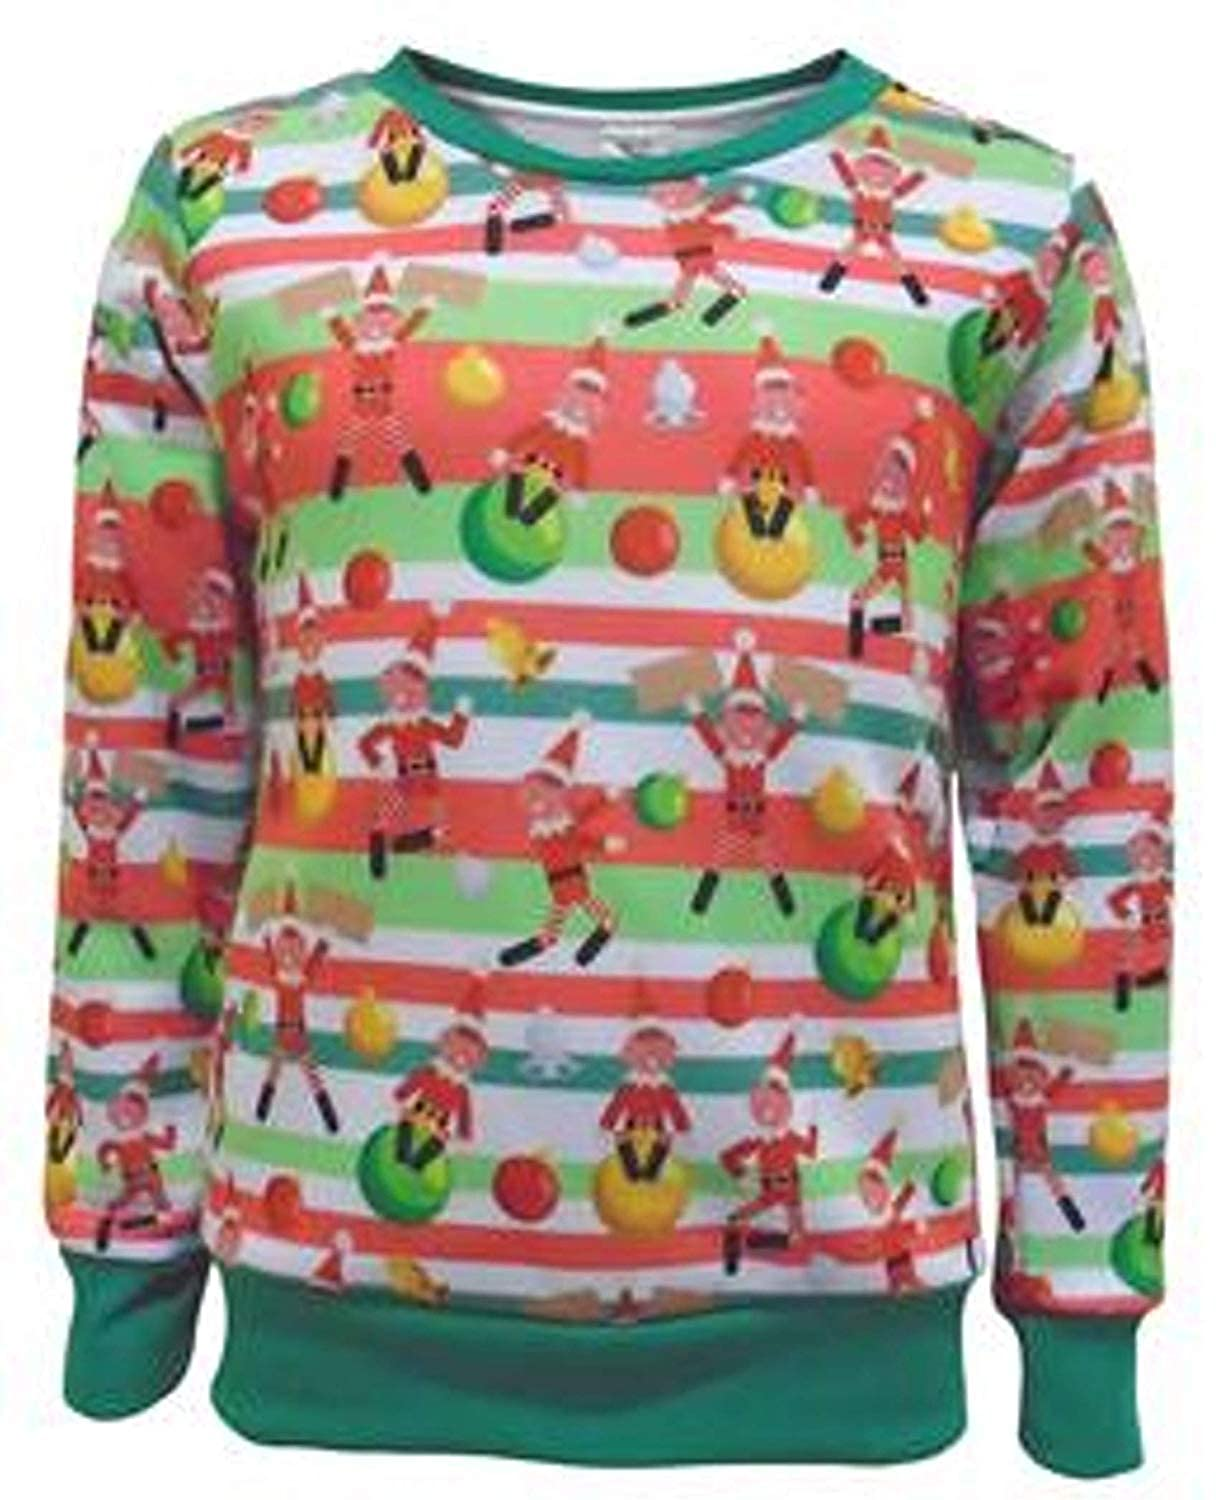 Christmas Jumper Boys Festive Elf Kids Sweatshirt